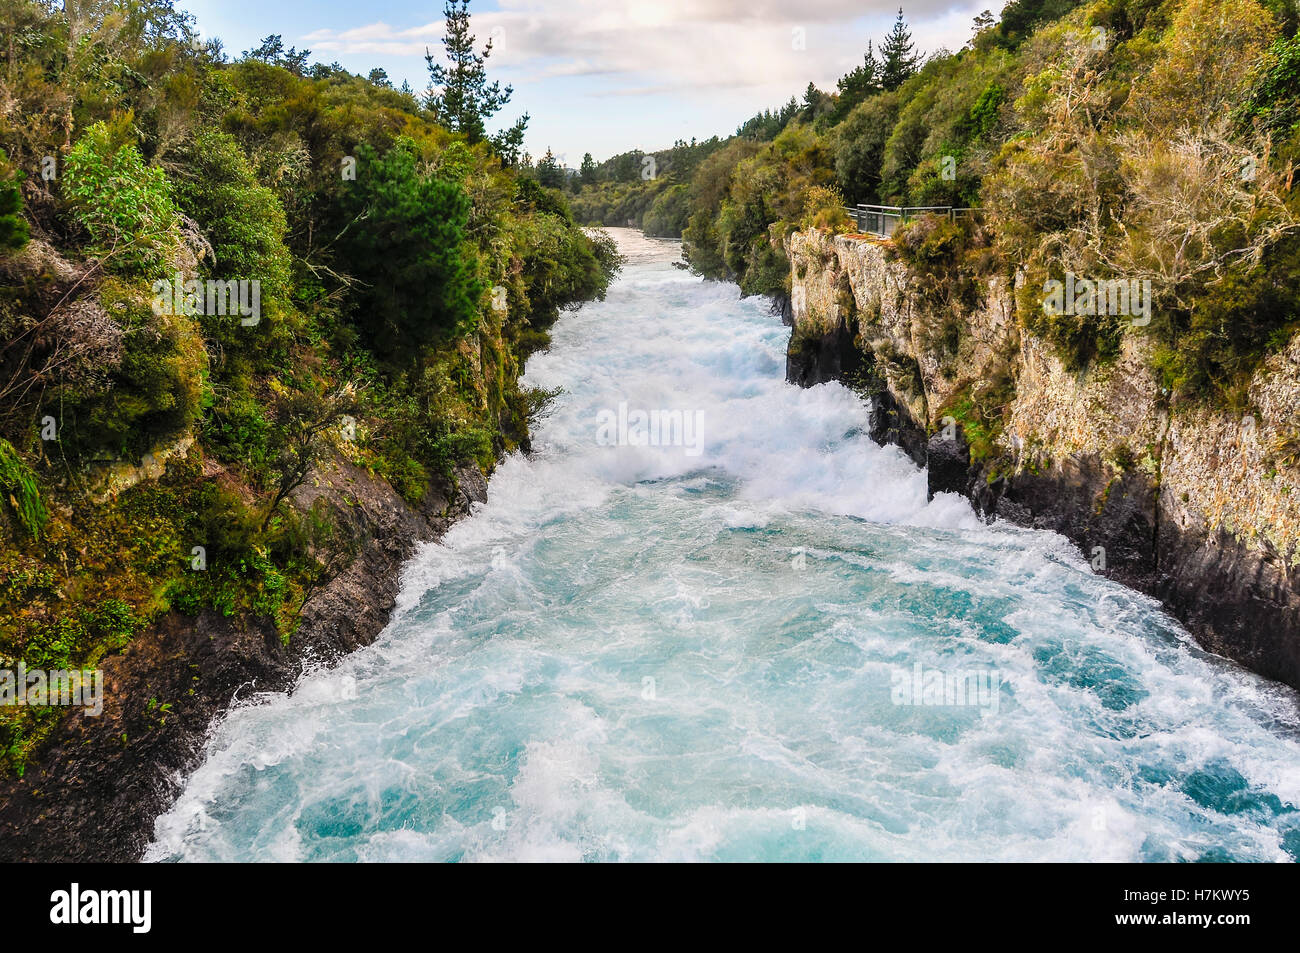 The rushing wild stream of Huka Falls near Lake Taupo, New Zealand - Stock Image